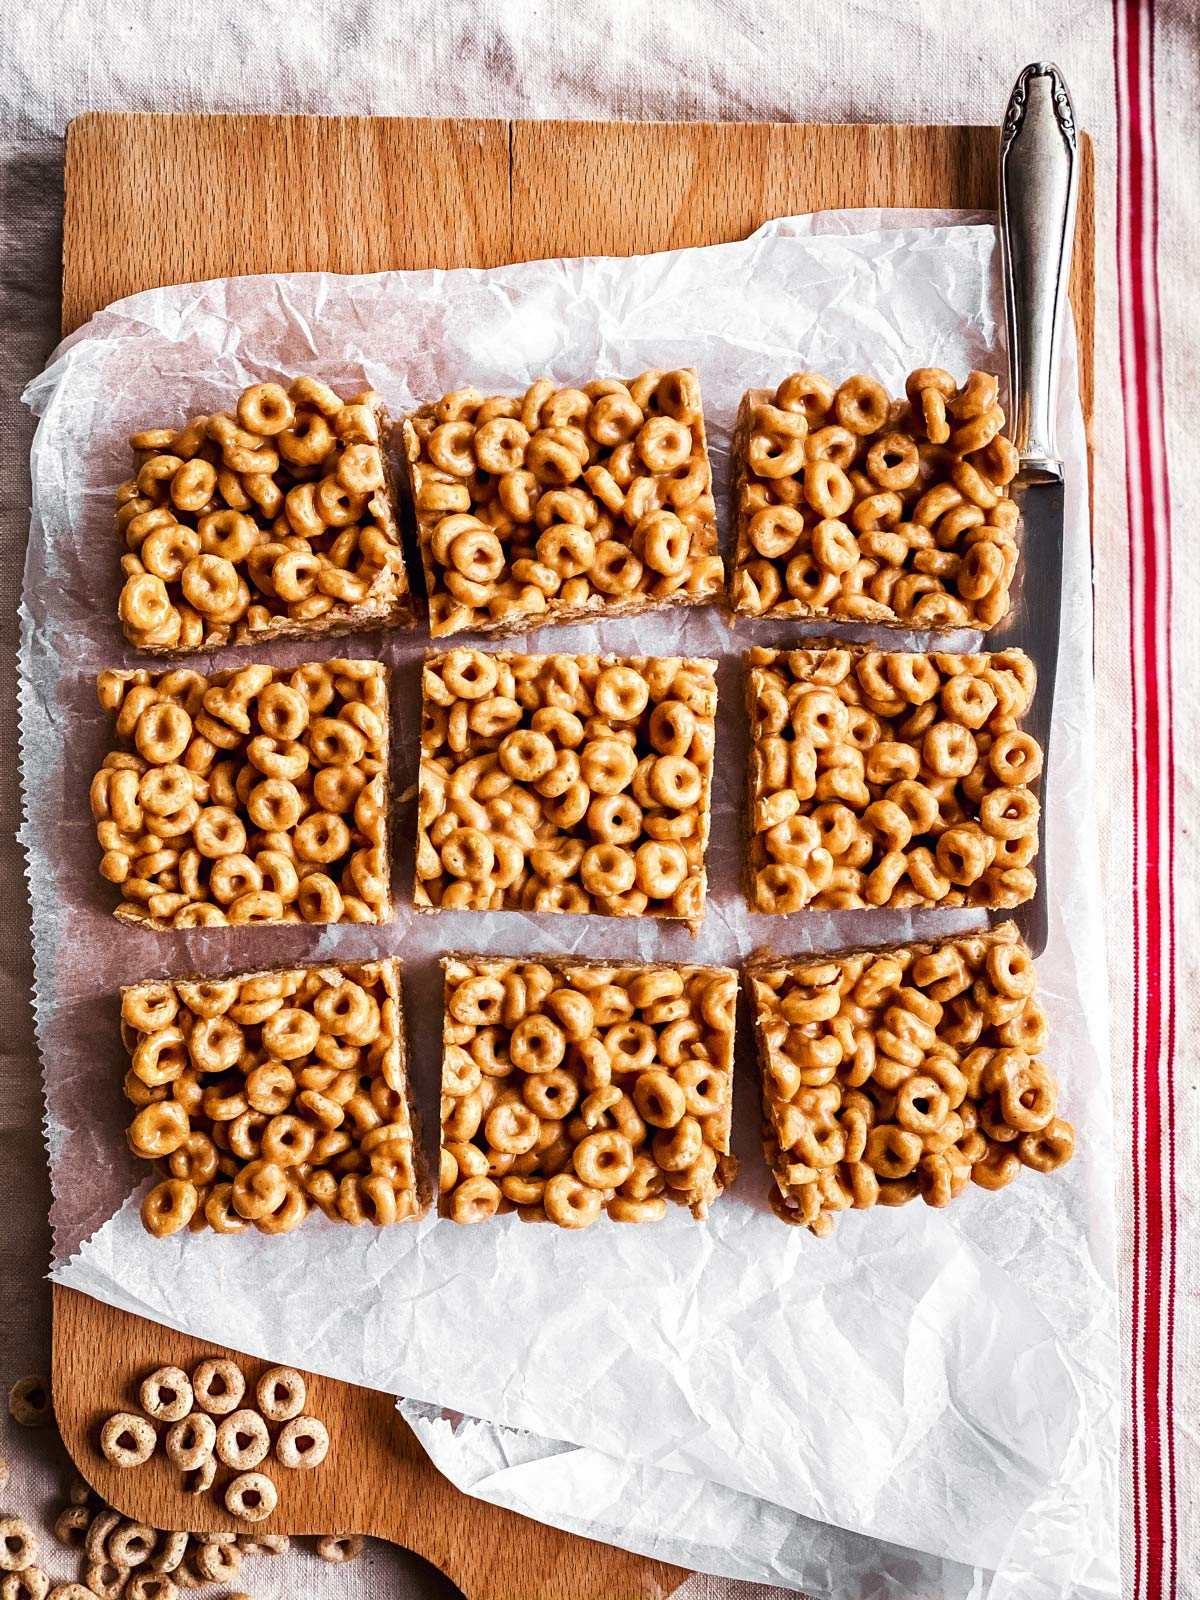 sliced peanut butter cheerio bars on wooden chopping board